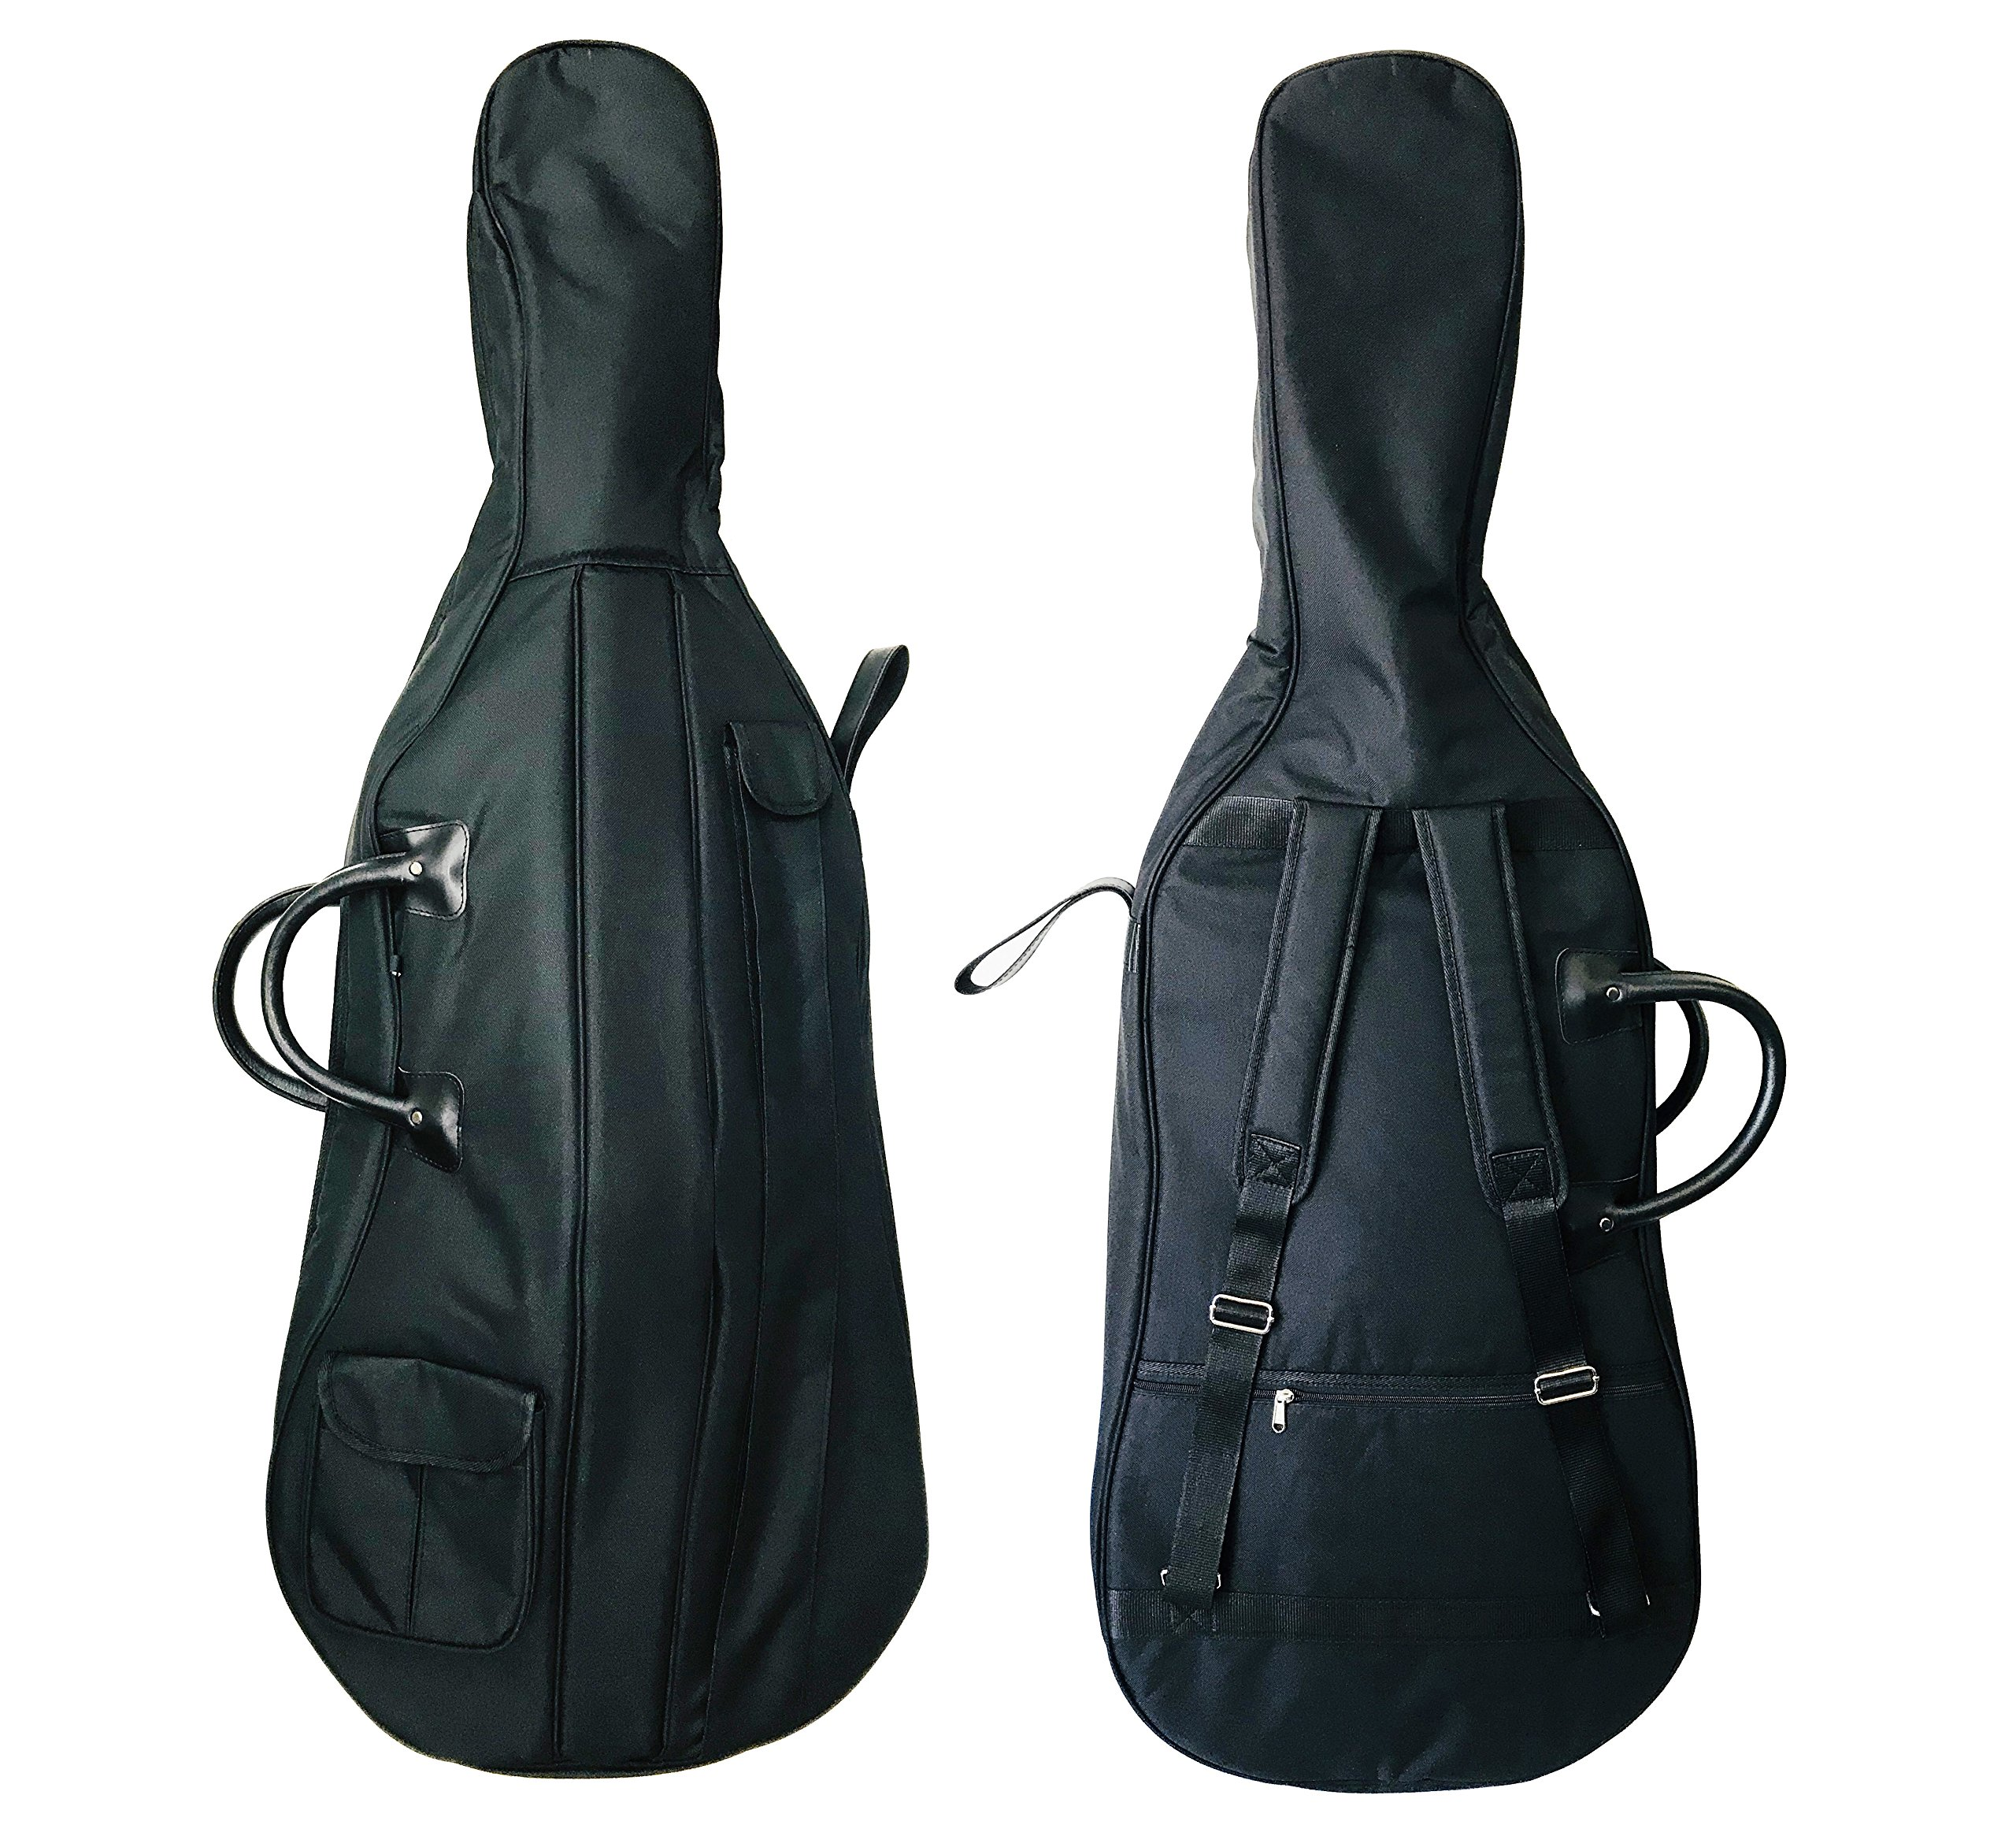 MI&VI Cello Soft Case Cello Gig Bag - Double Stitched, 12mm Thick Padded, Sturdy Waterproof Backpack w/Adjustable Carrying Straps, Handle, Bow & Sheet Pocket, Accessories Comparment (Cello 4/4)